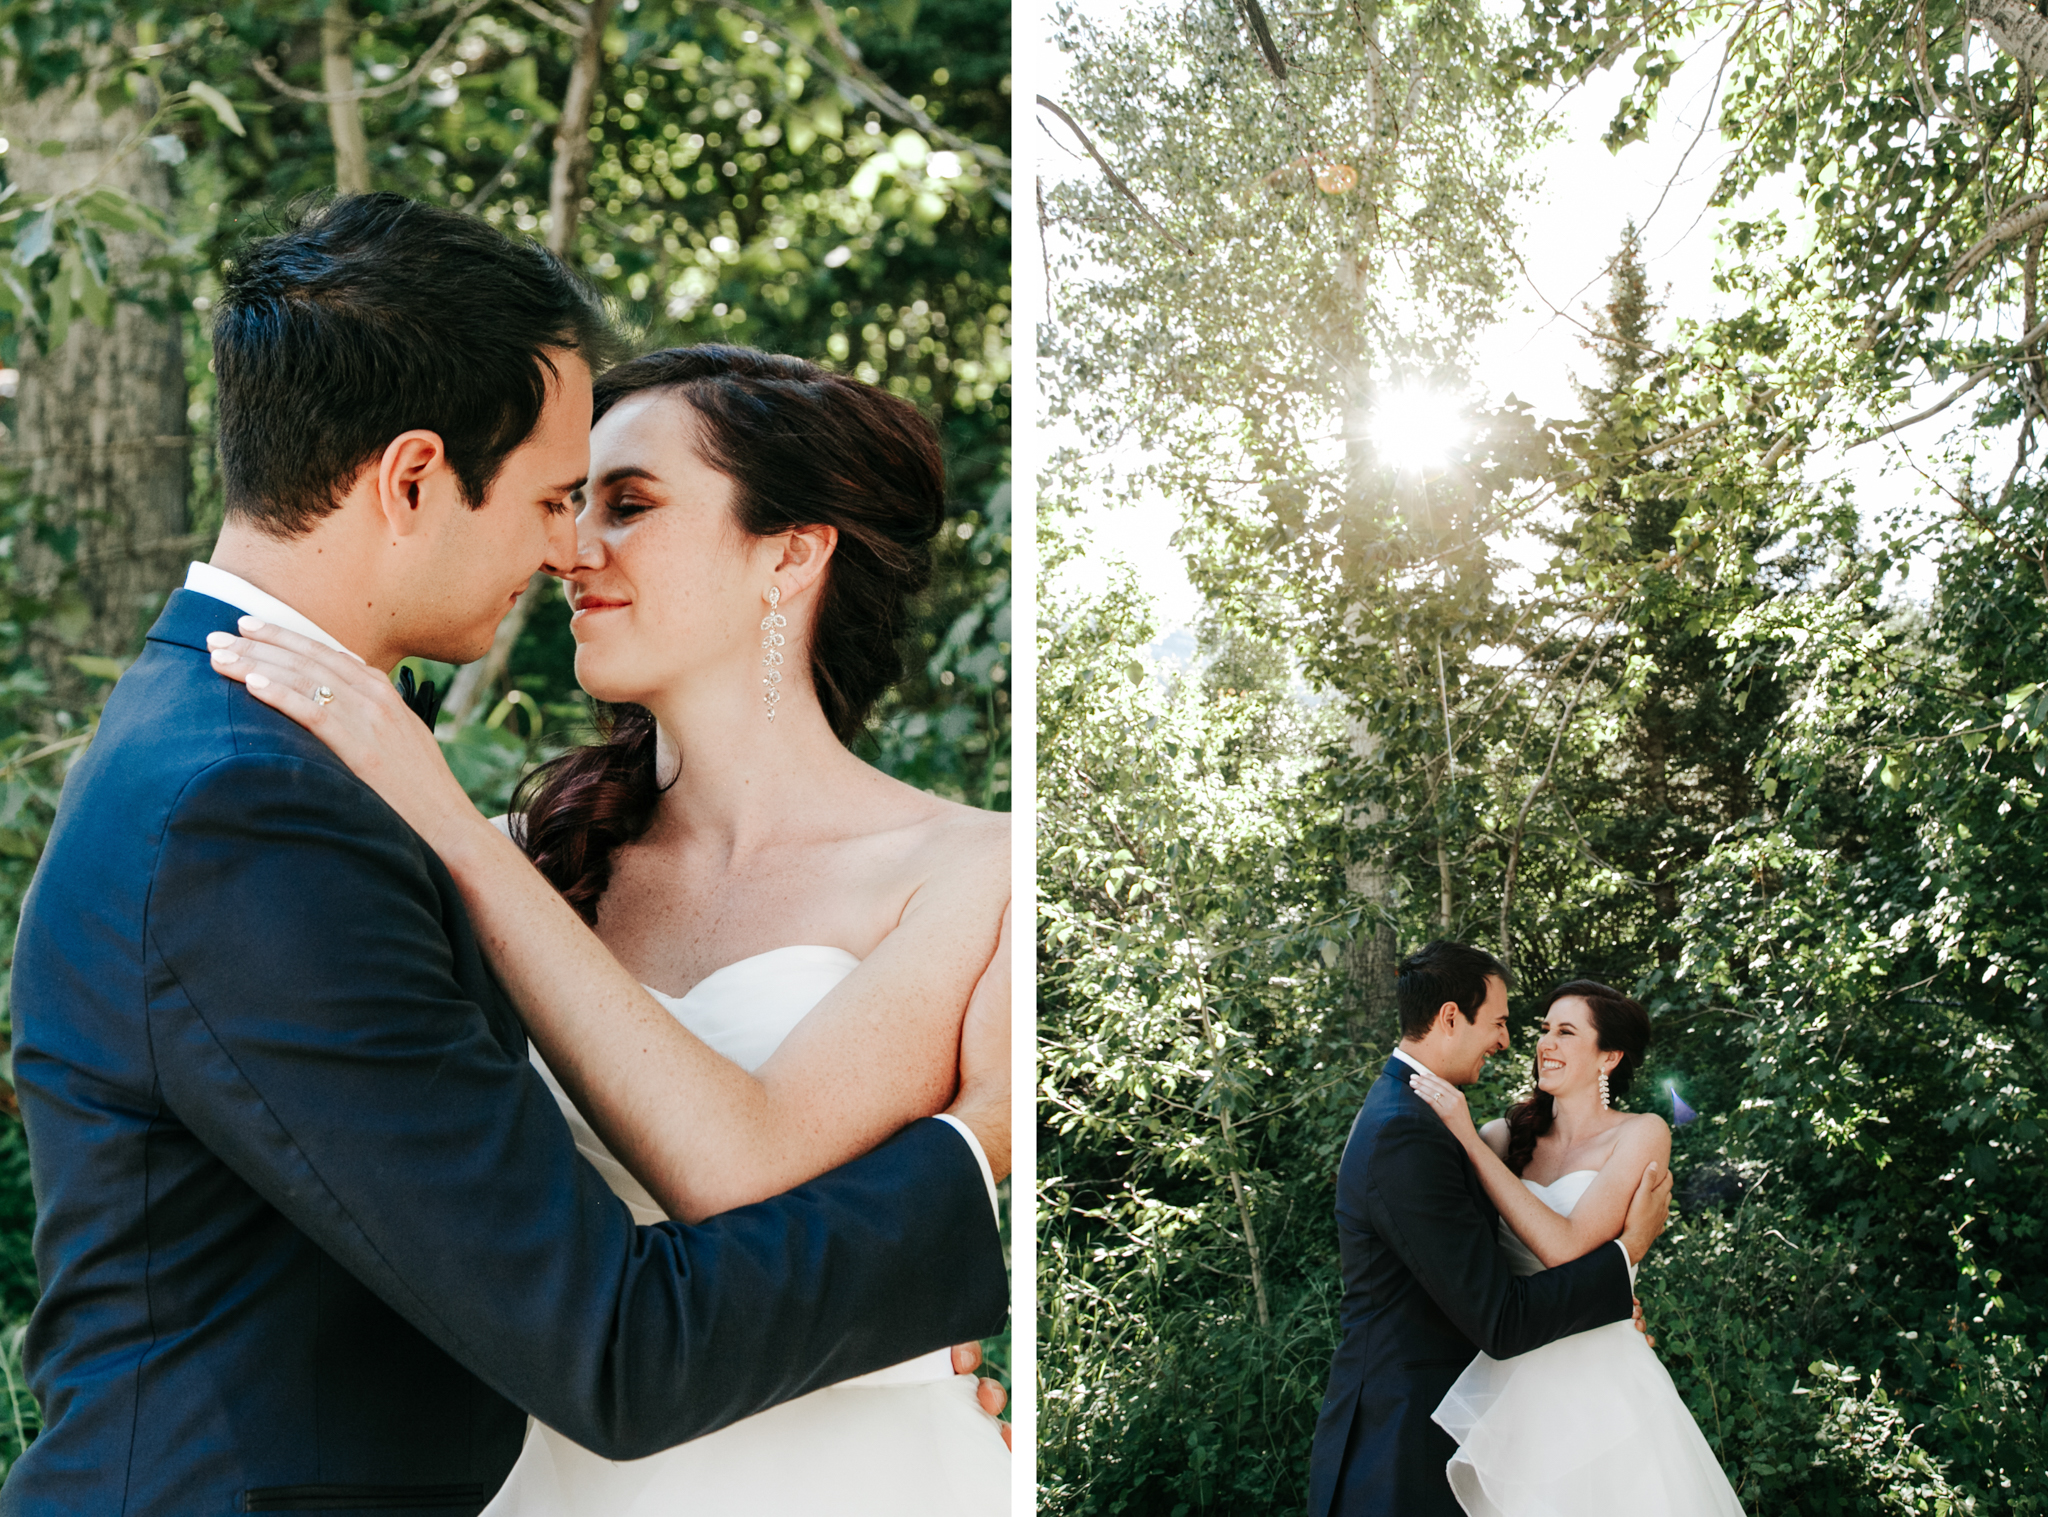 waterton-wedding-photographer-love-and-be-loved-photography-lethbridge-calgary-adam-jodie-image-picture-photo-118.jpg